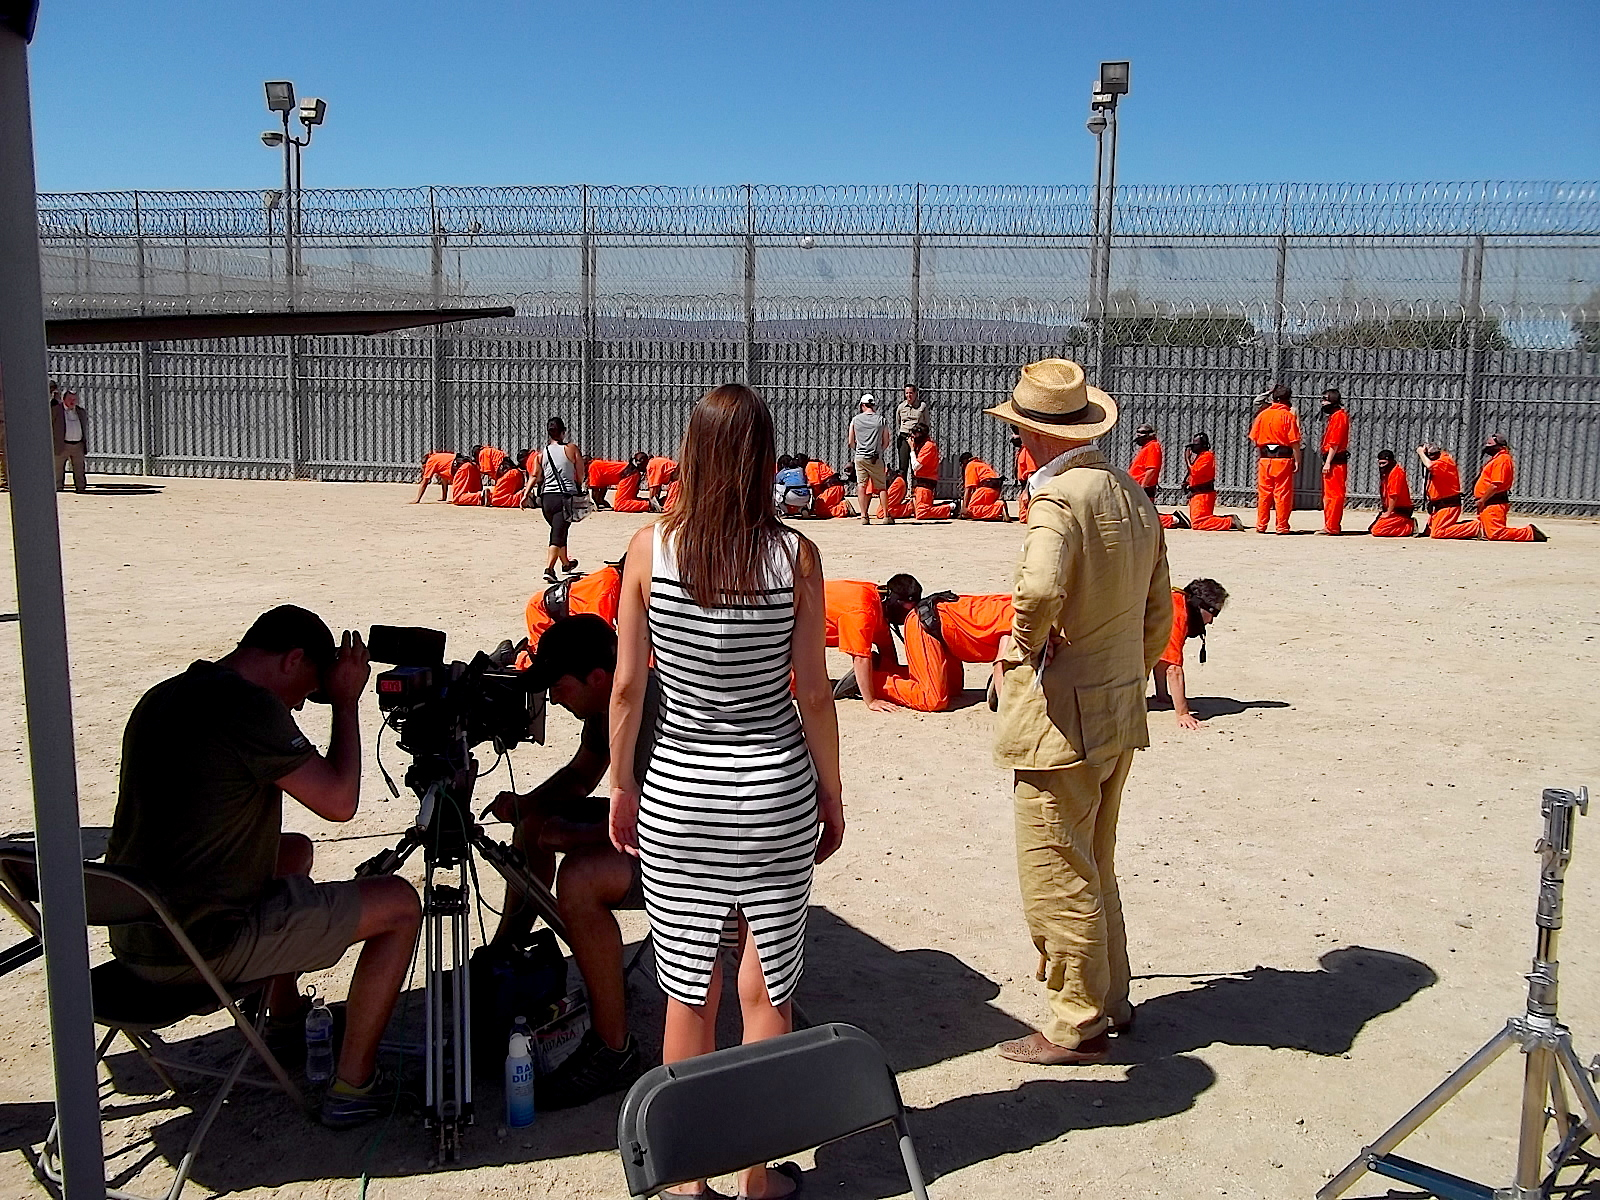 THC3Backstage 20 - The Human Centipede 3 Trailer Released